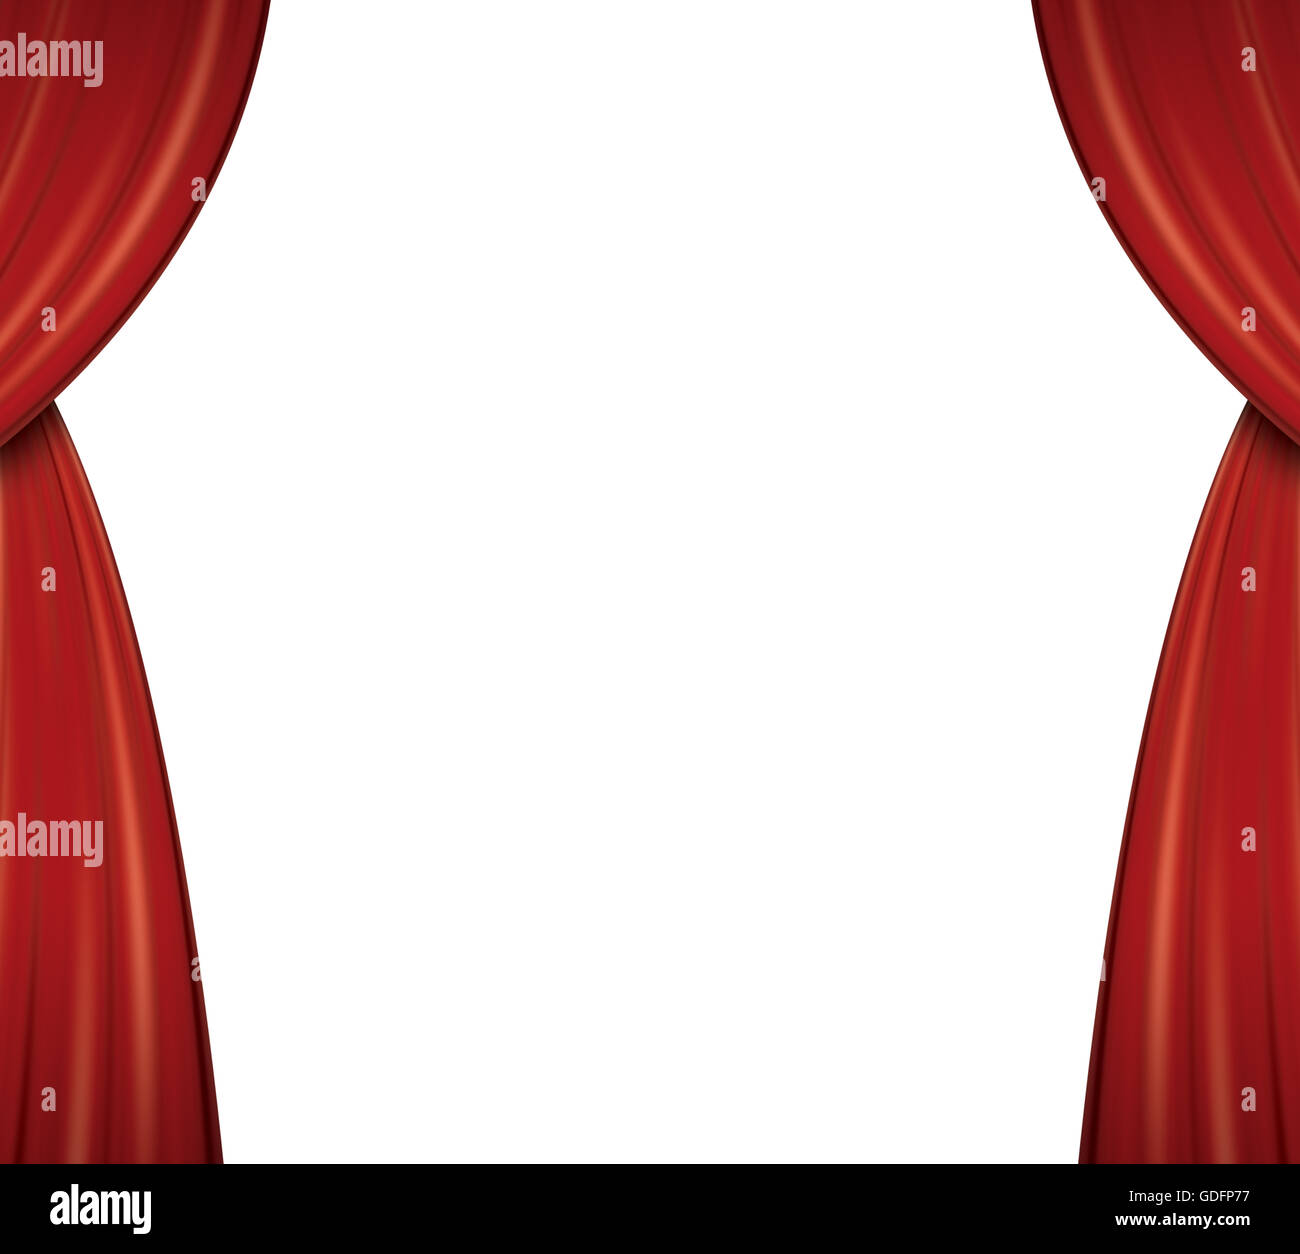 Royalty free or white curtain background drapes royalty free stock - Red Theater Curtains Isolated On White Background